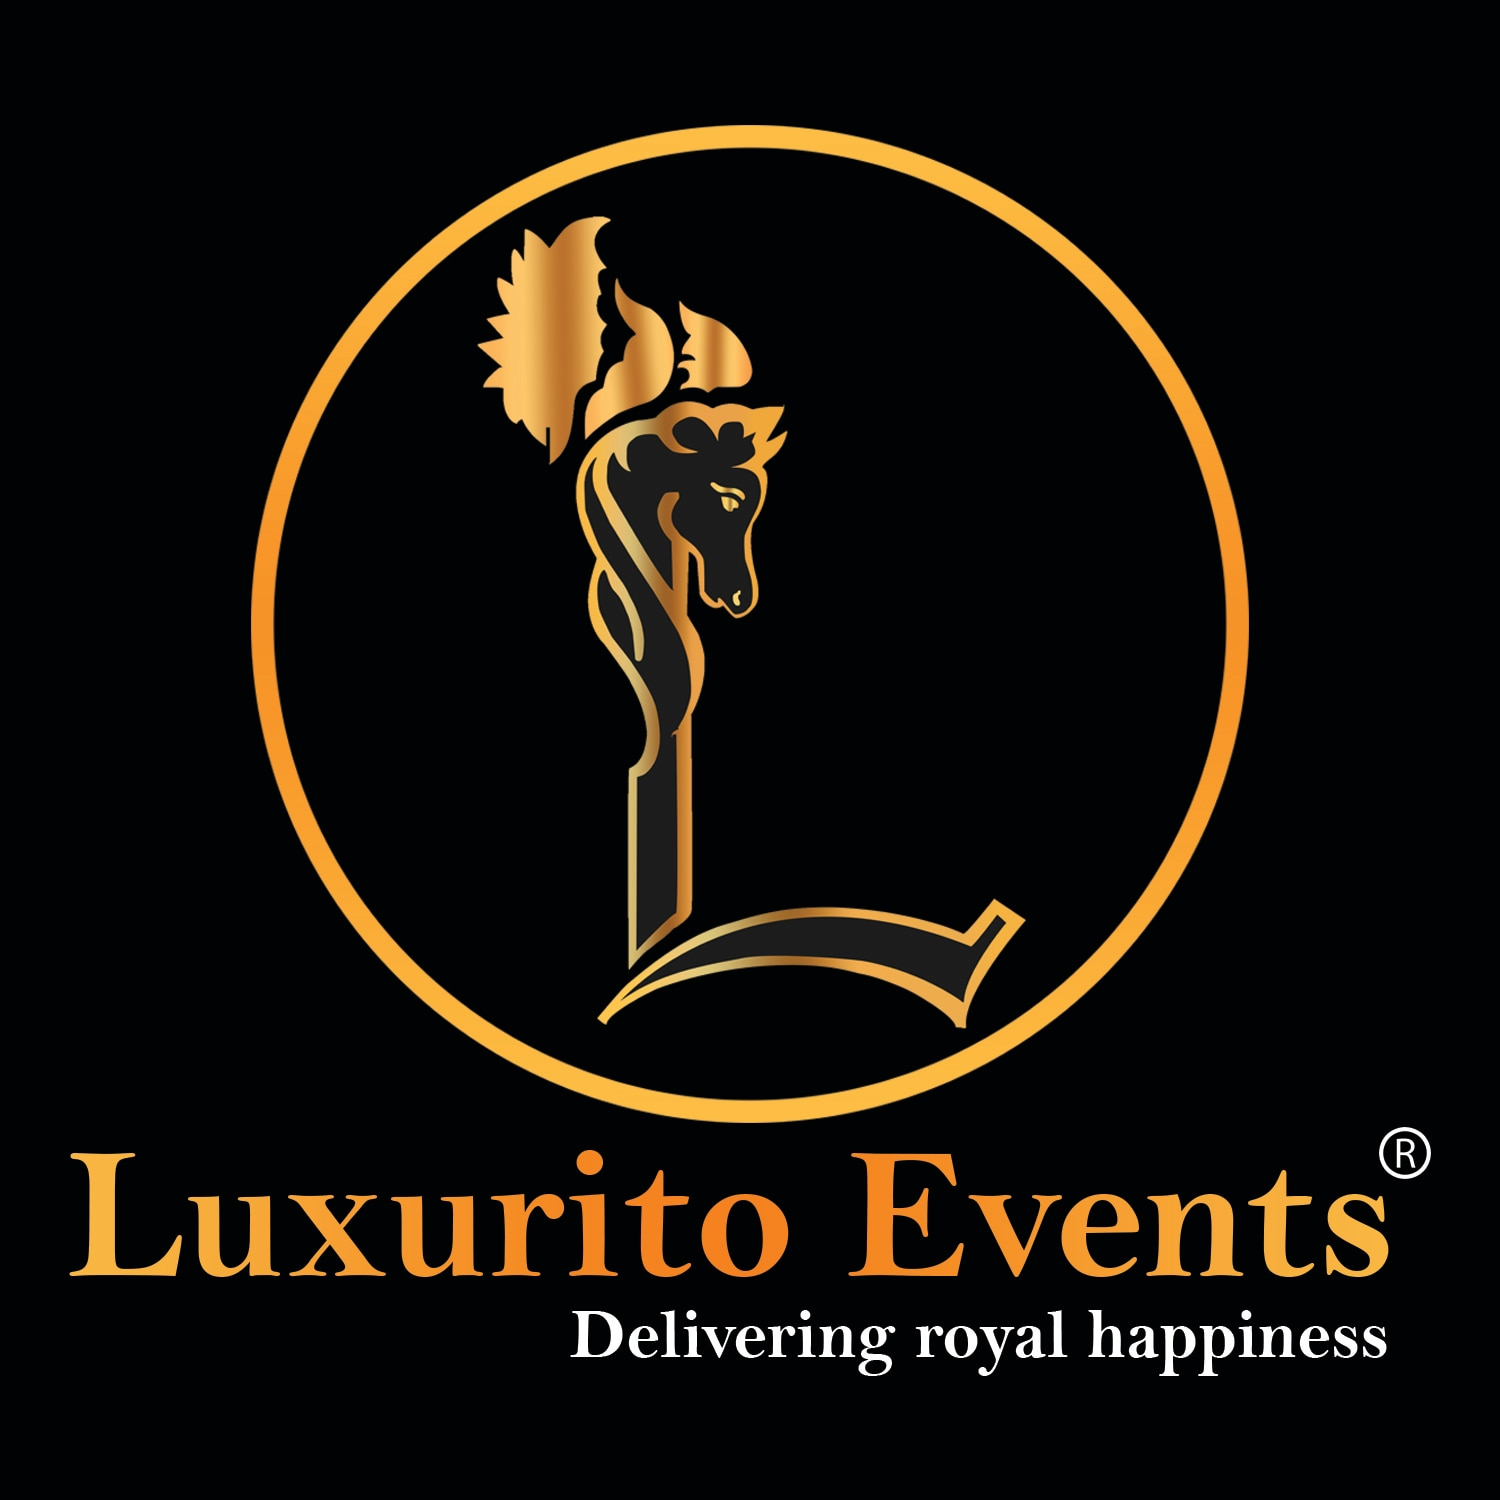 Logo of Luxurito Events